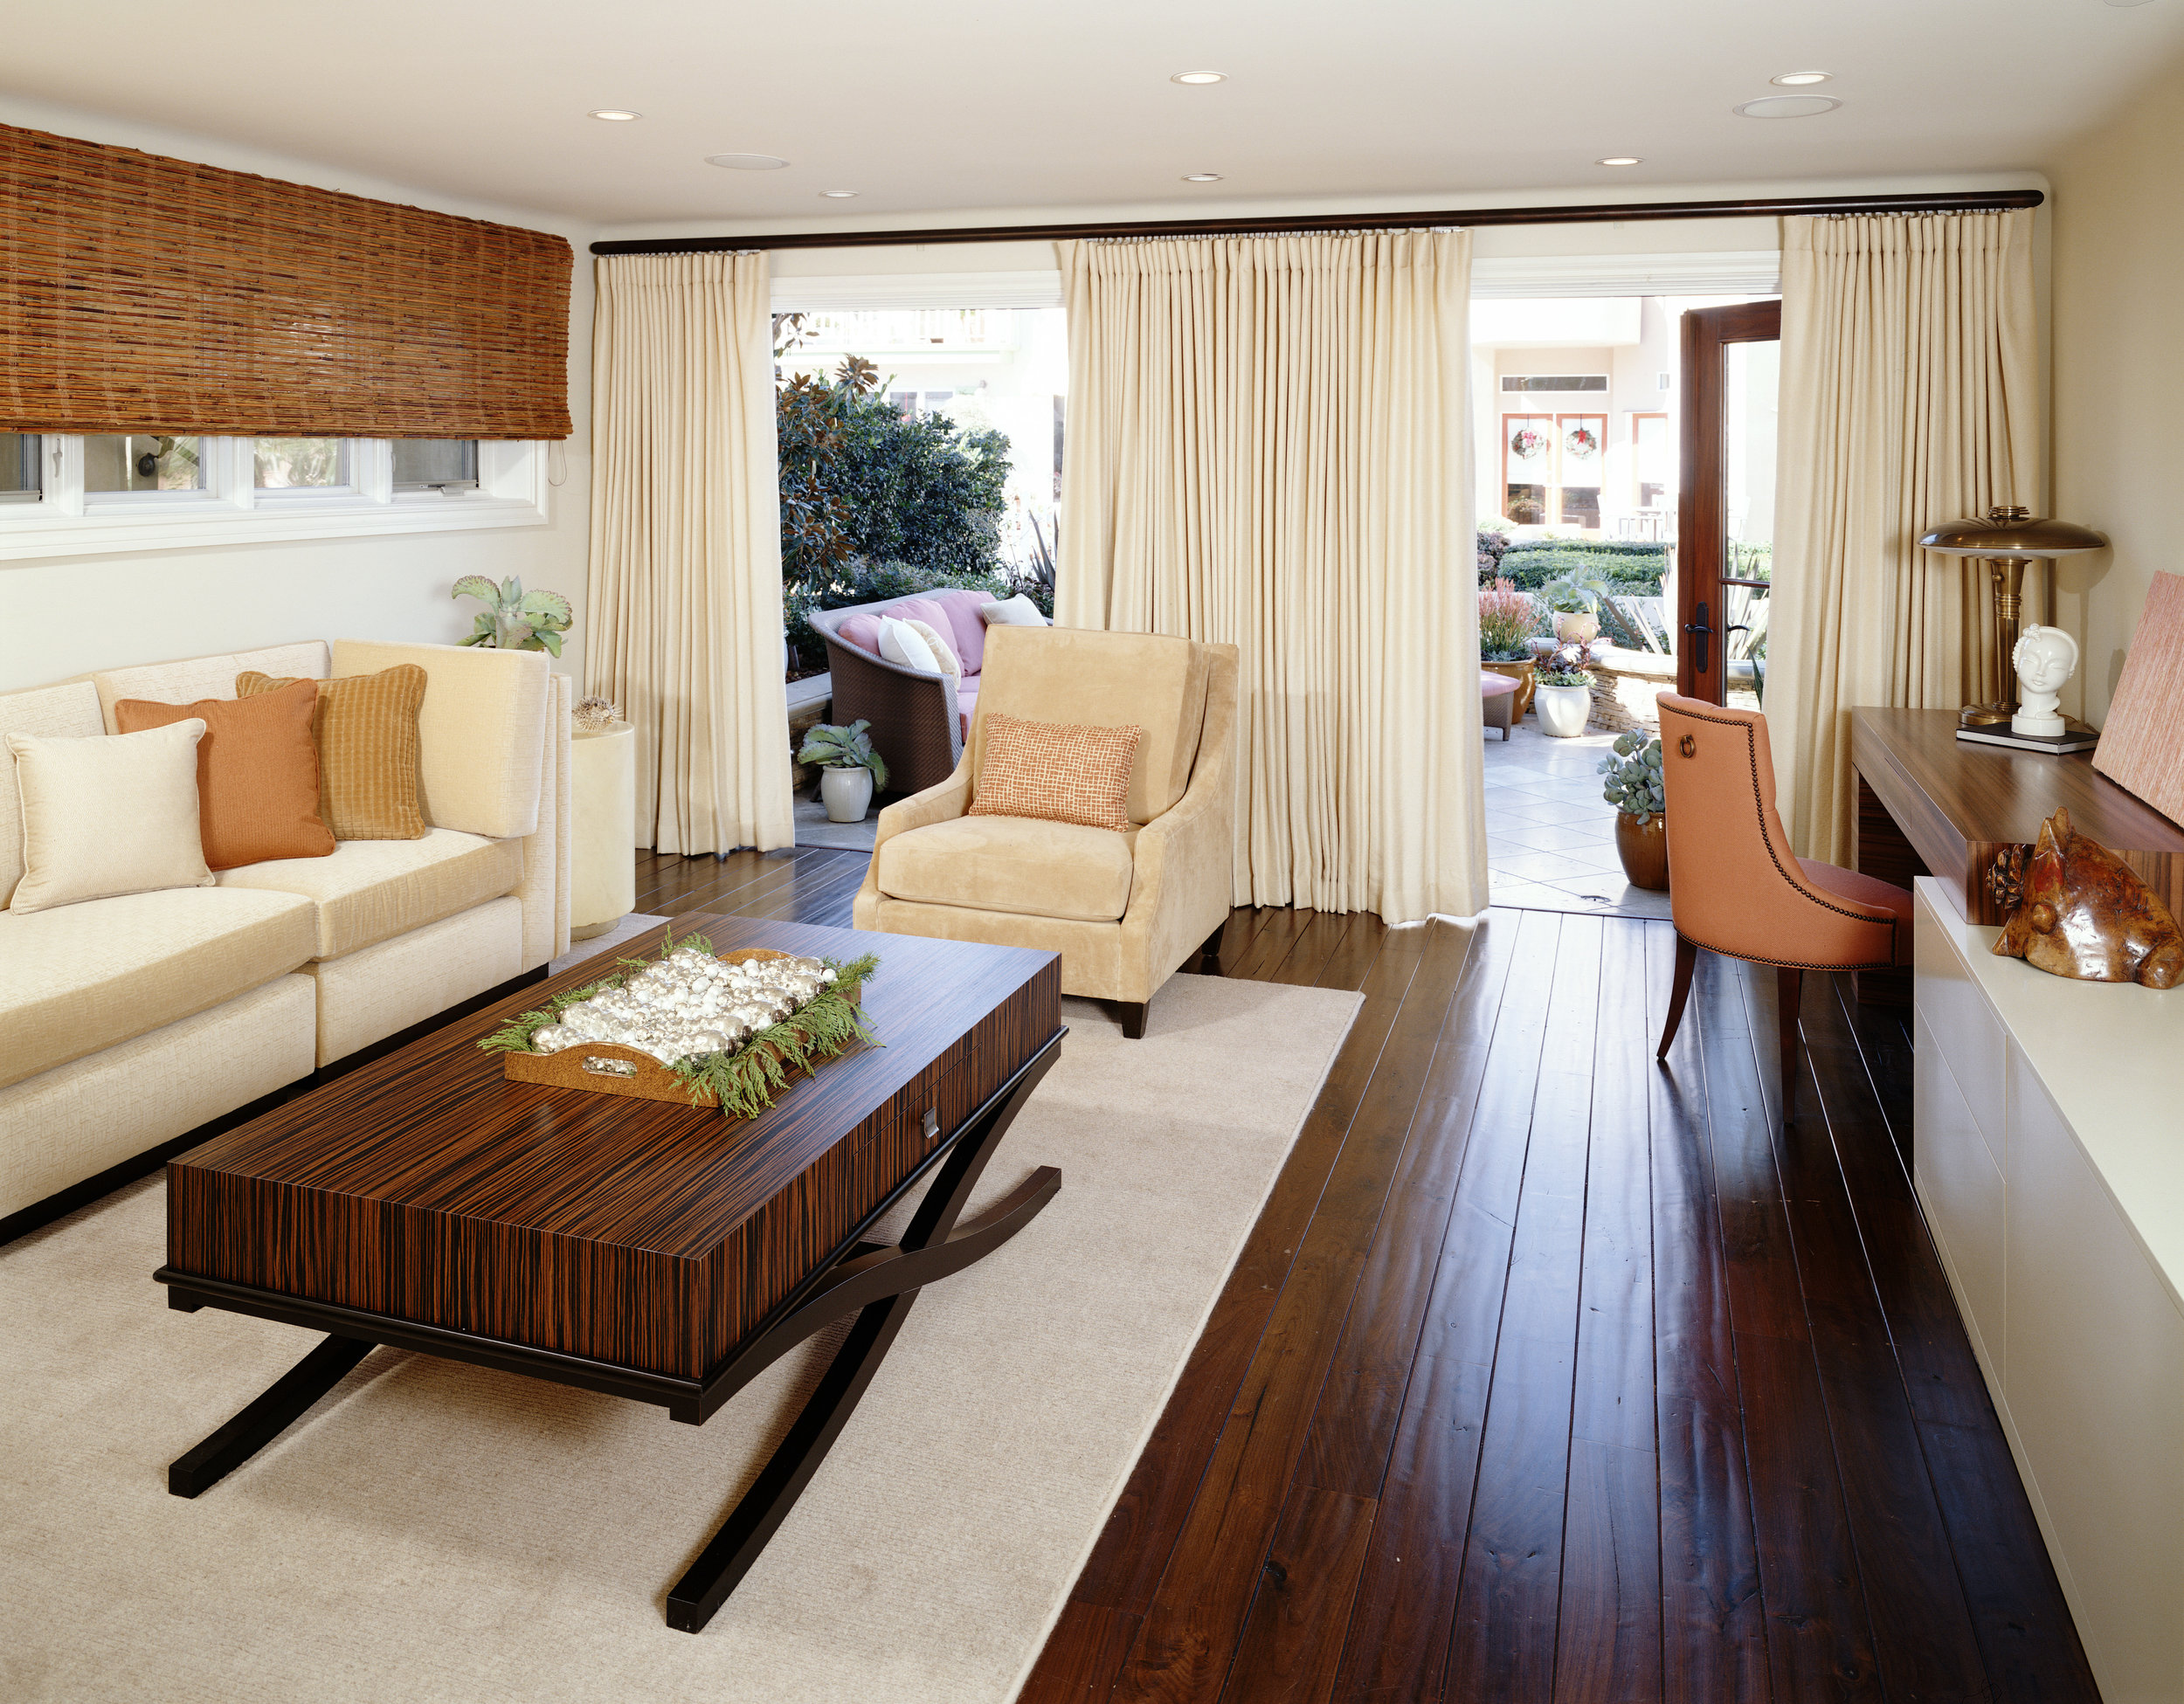 Sarah-barnard-design-indoor-outdoor-livingroom.jpg